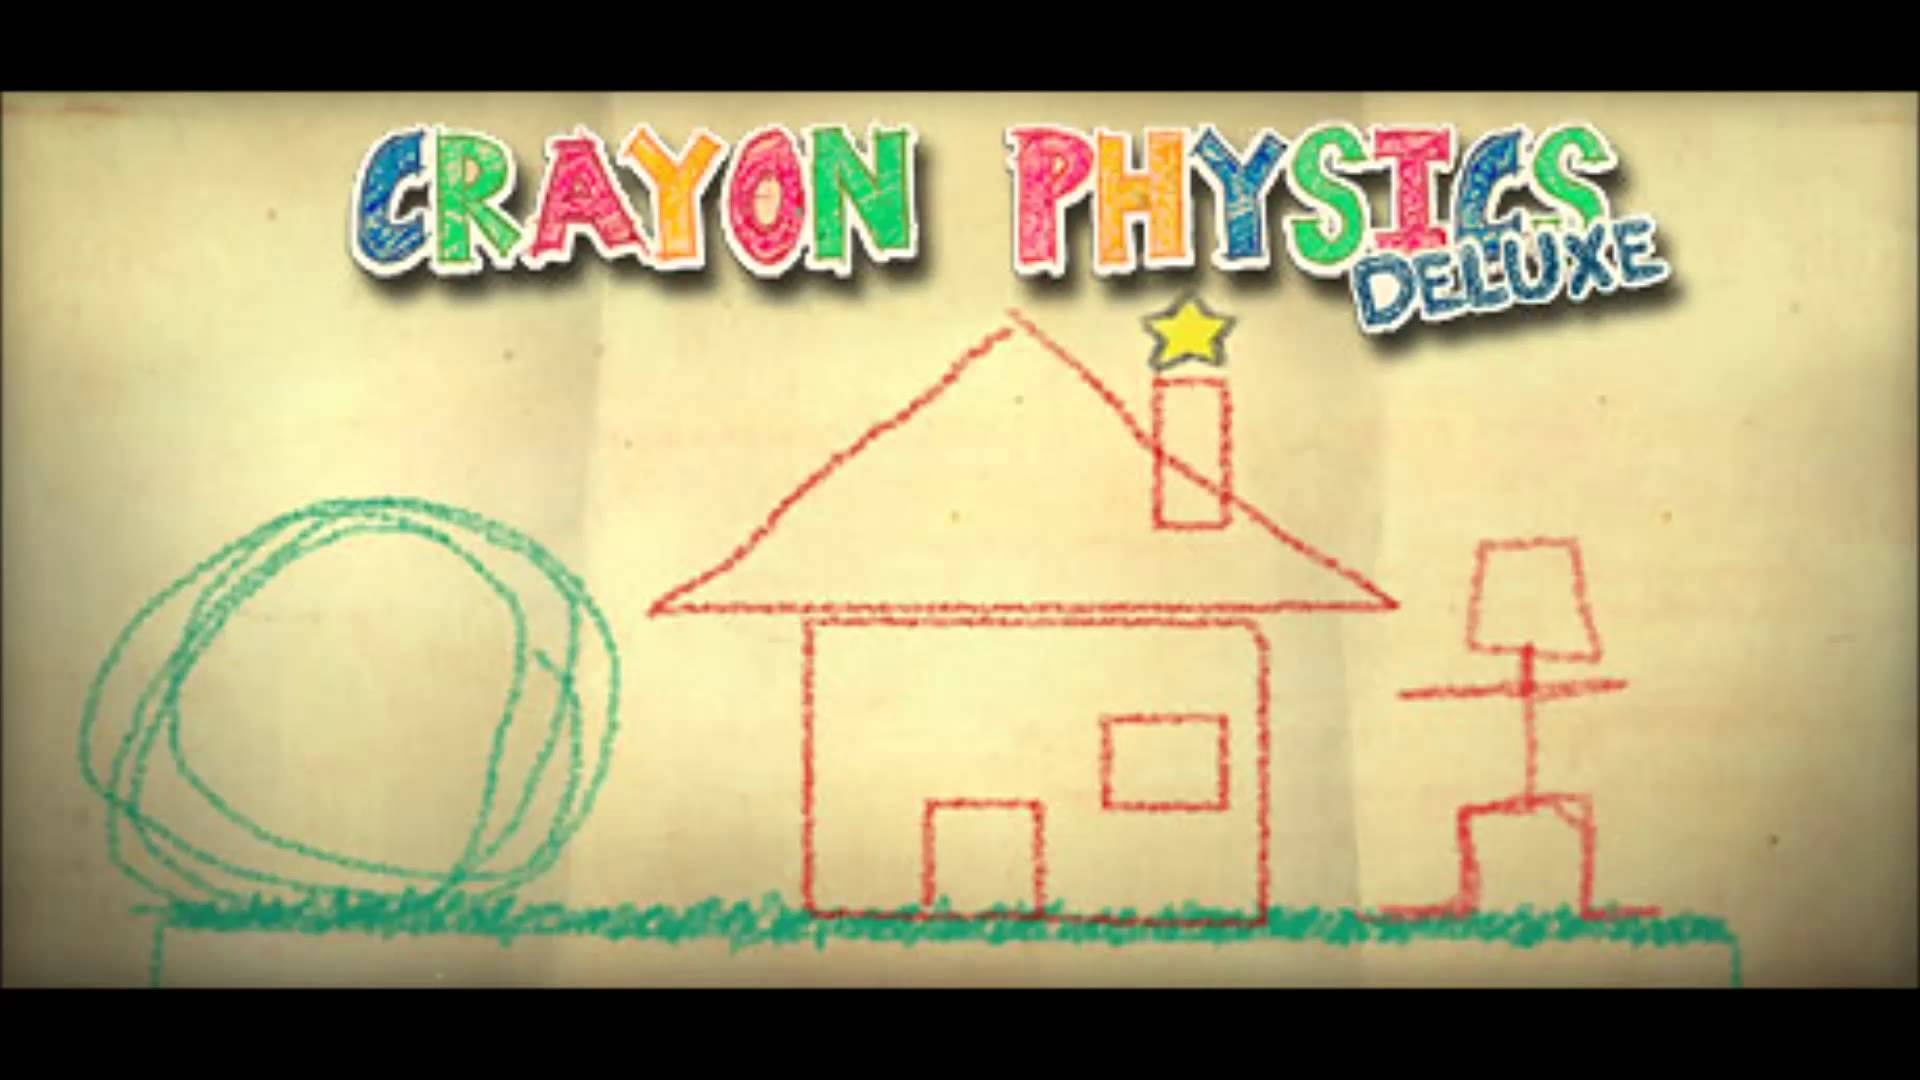 Crayon physics deluxe pc games gameplay golf youtube.